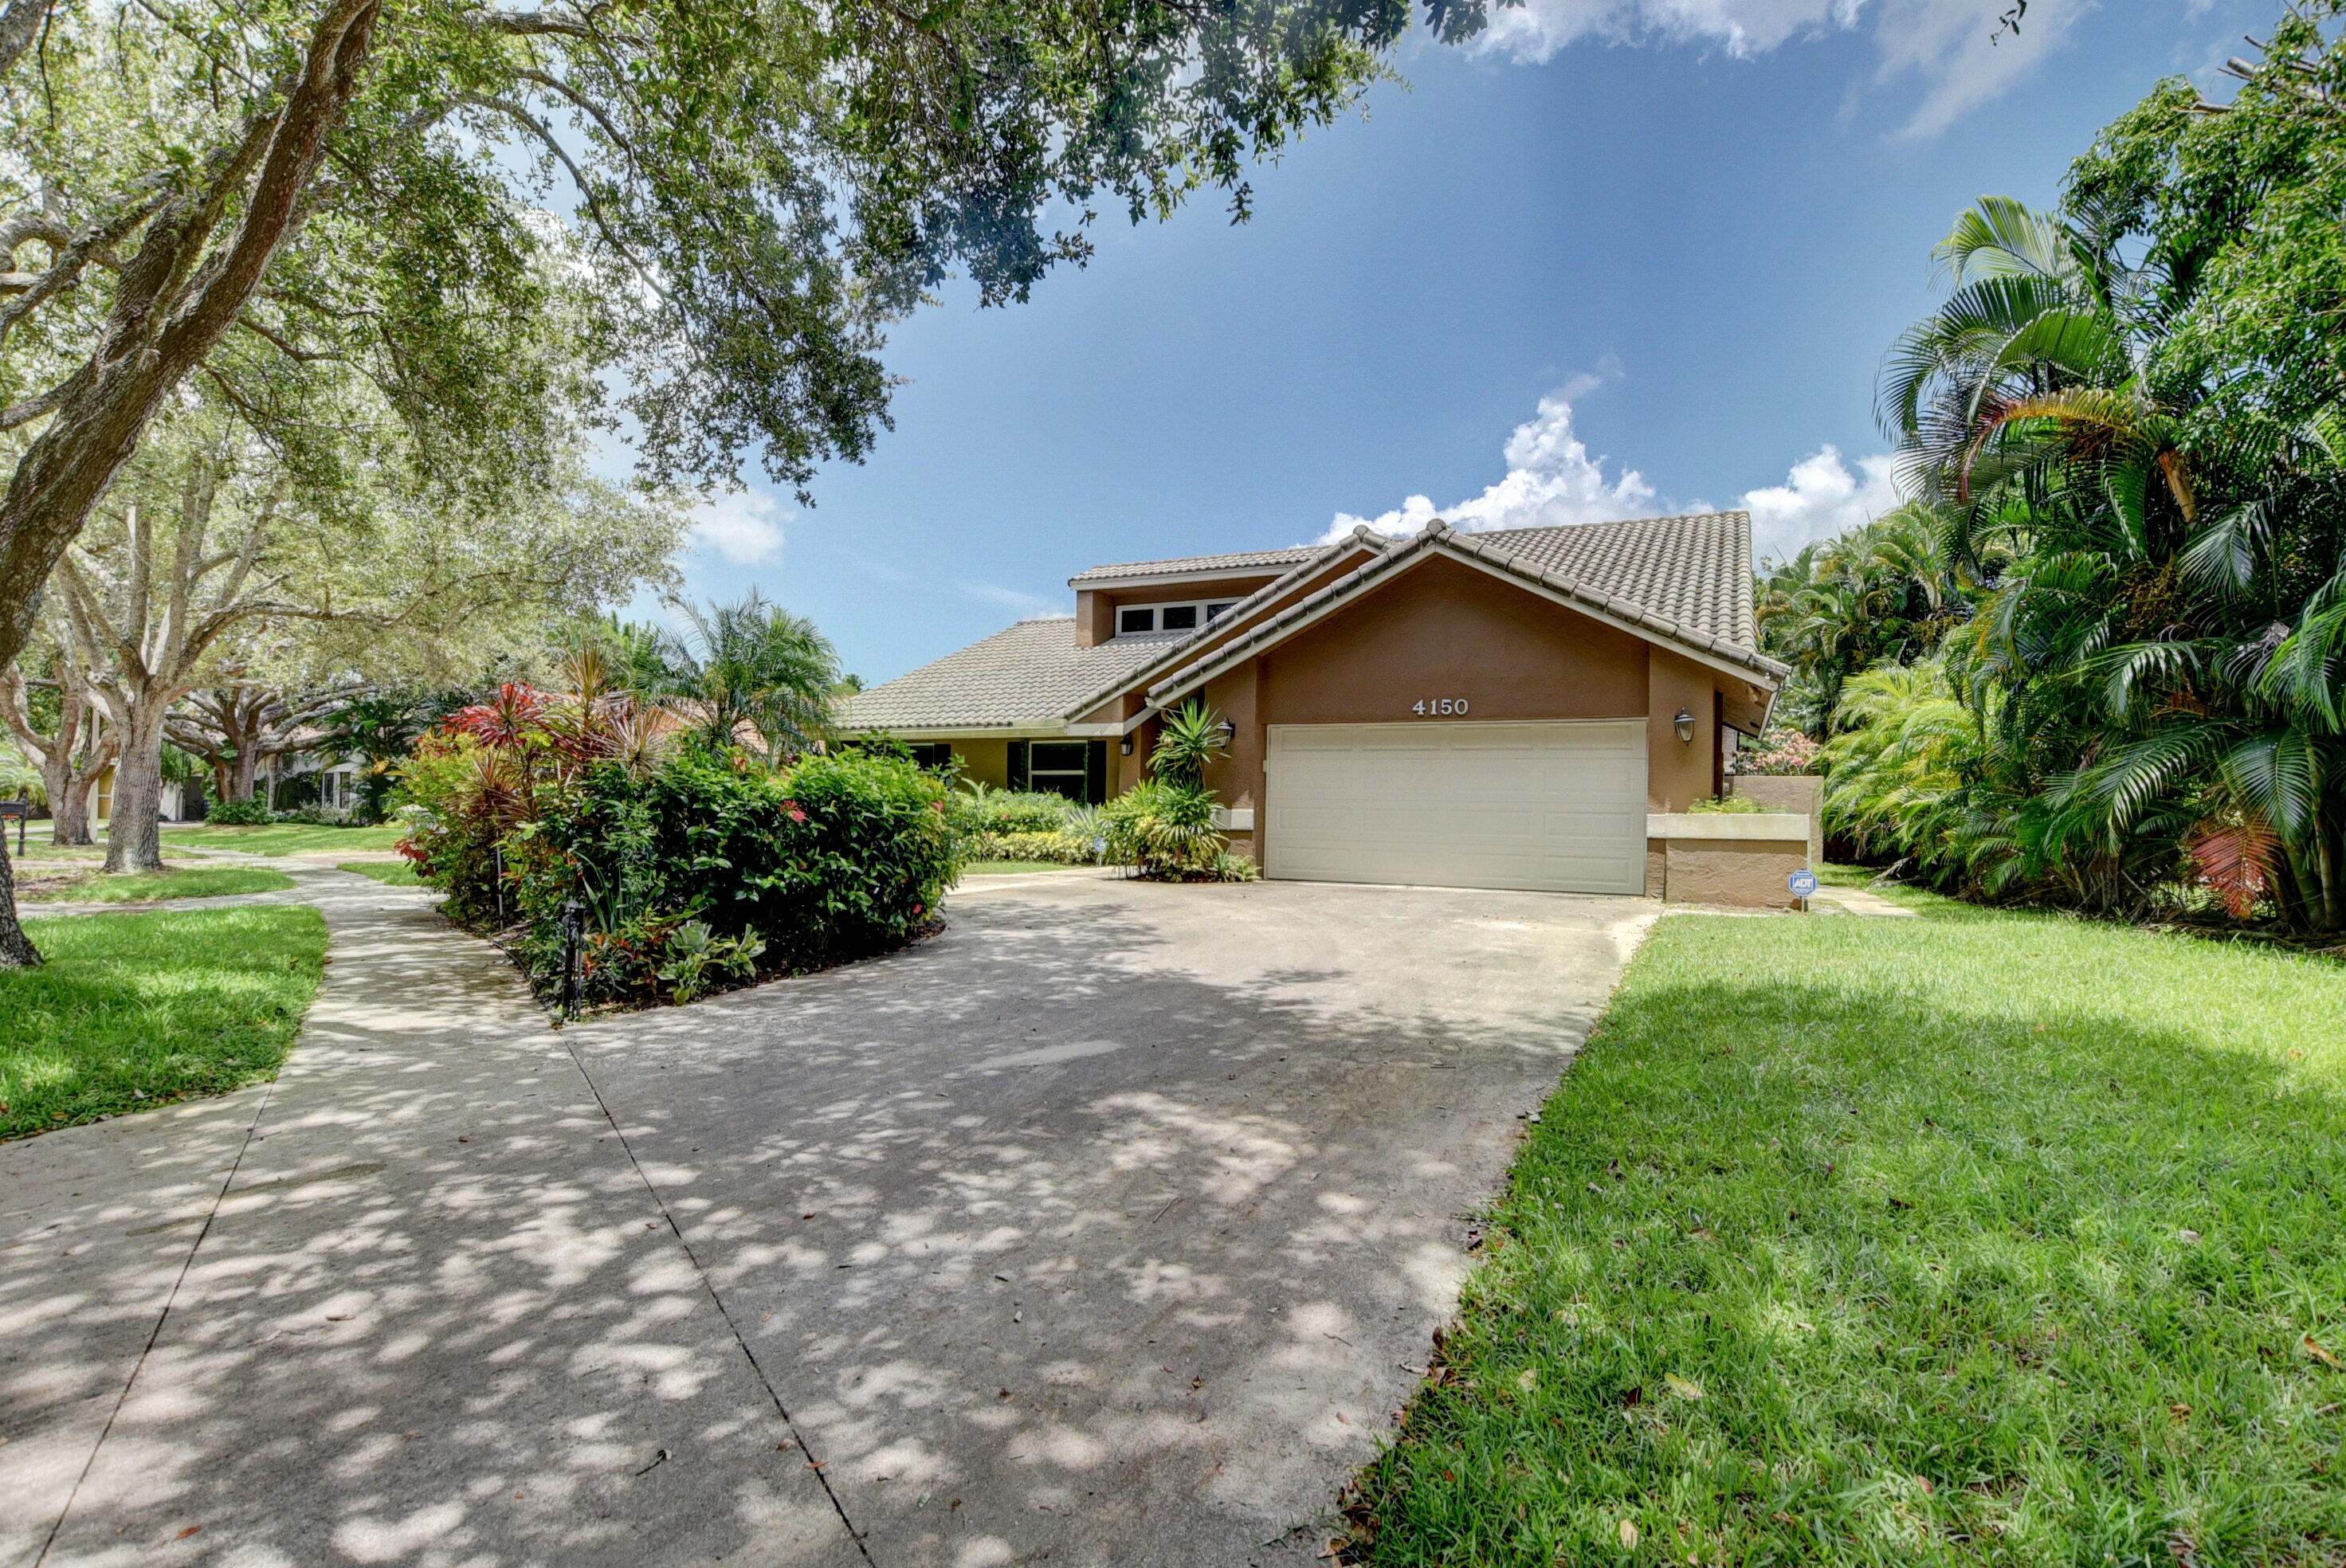 4150 NW 26th Avenue  For Sale 10708379, FL